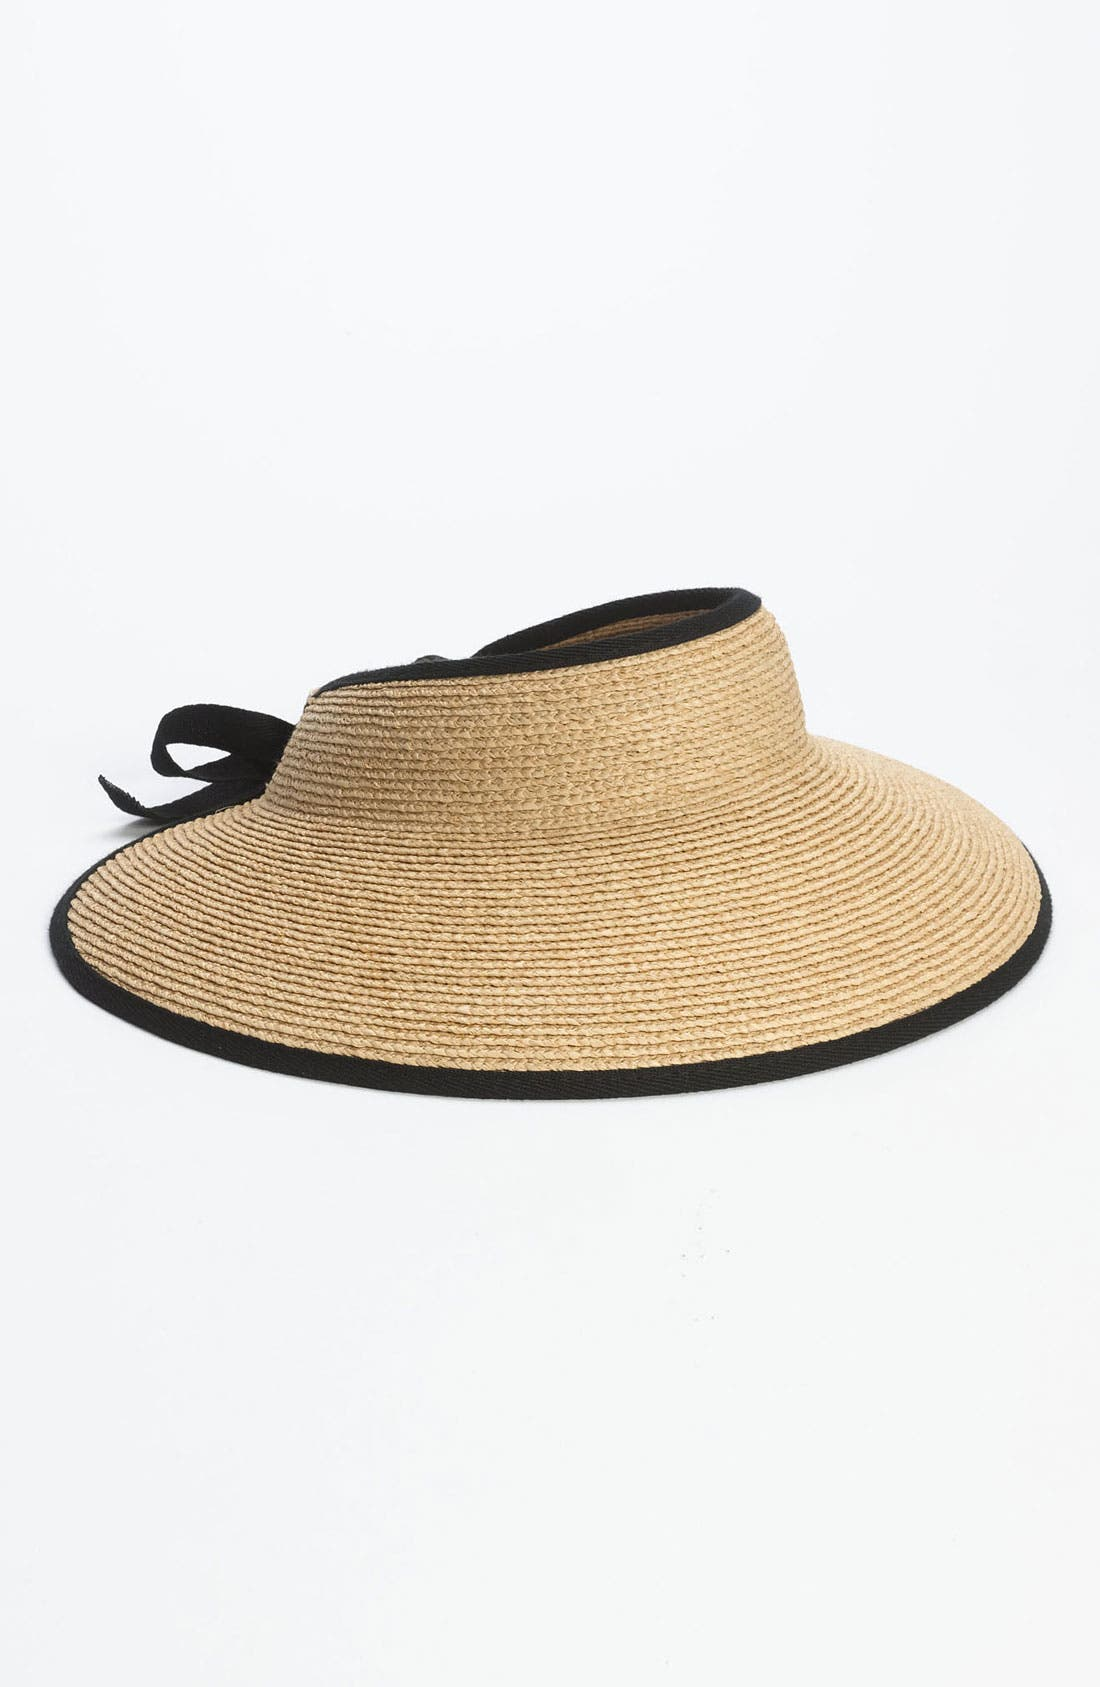 f1cb030d2a6db Women s Sun   Straw Hats